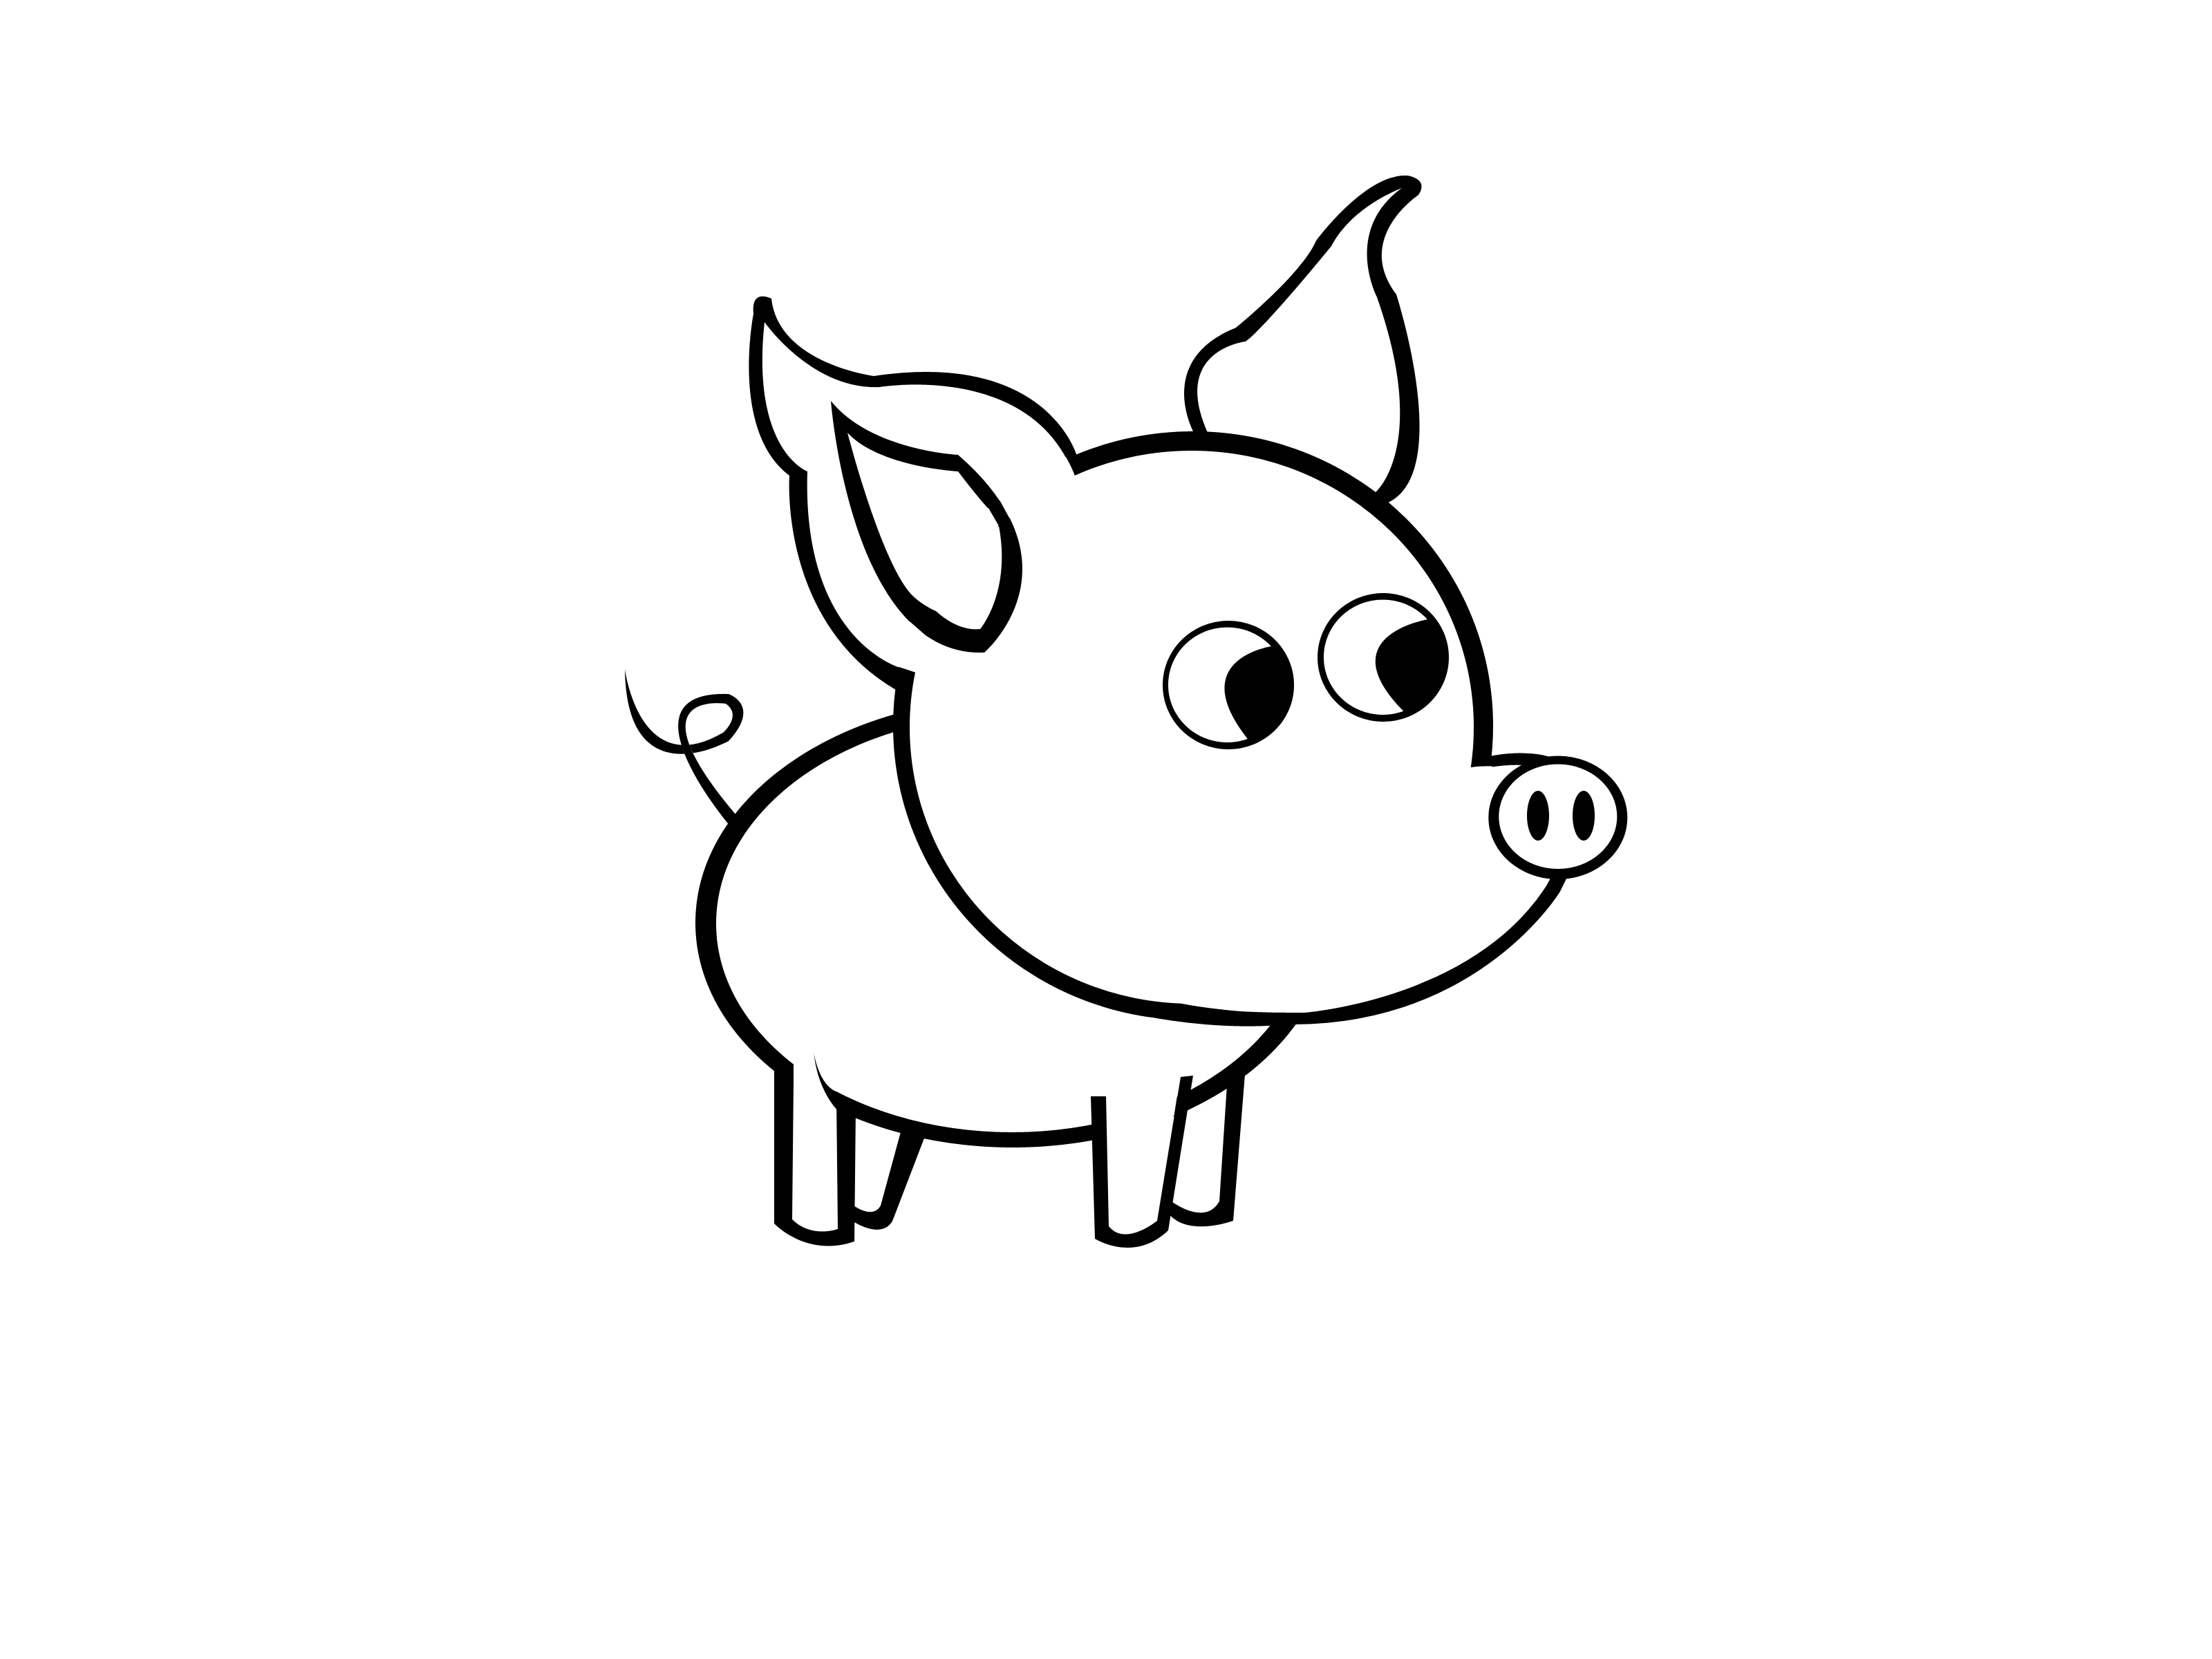 3200x2400 How To Draw A Simple Pig 9 Steps (With Pictures)